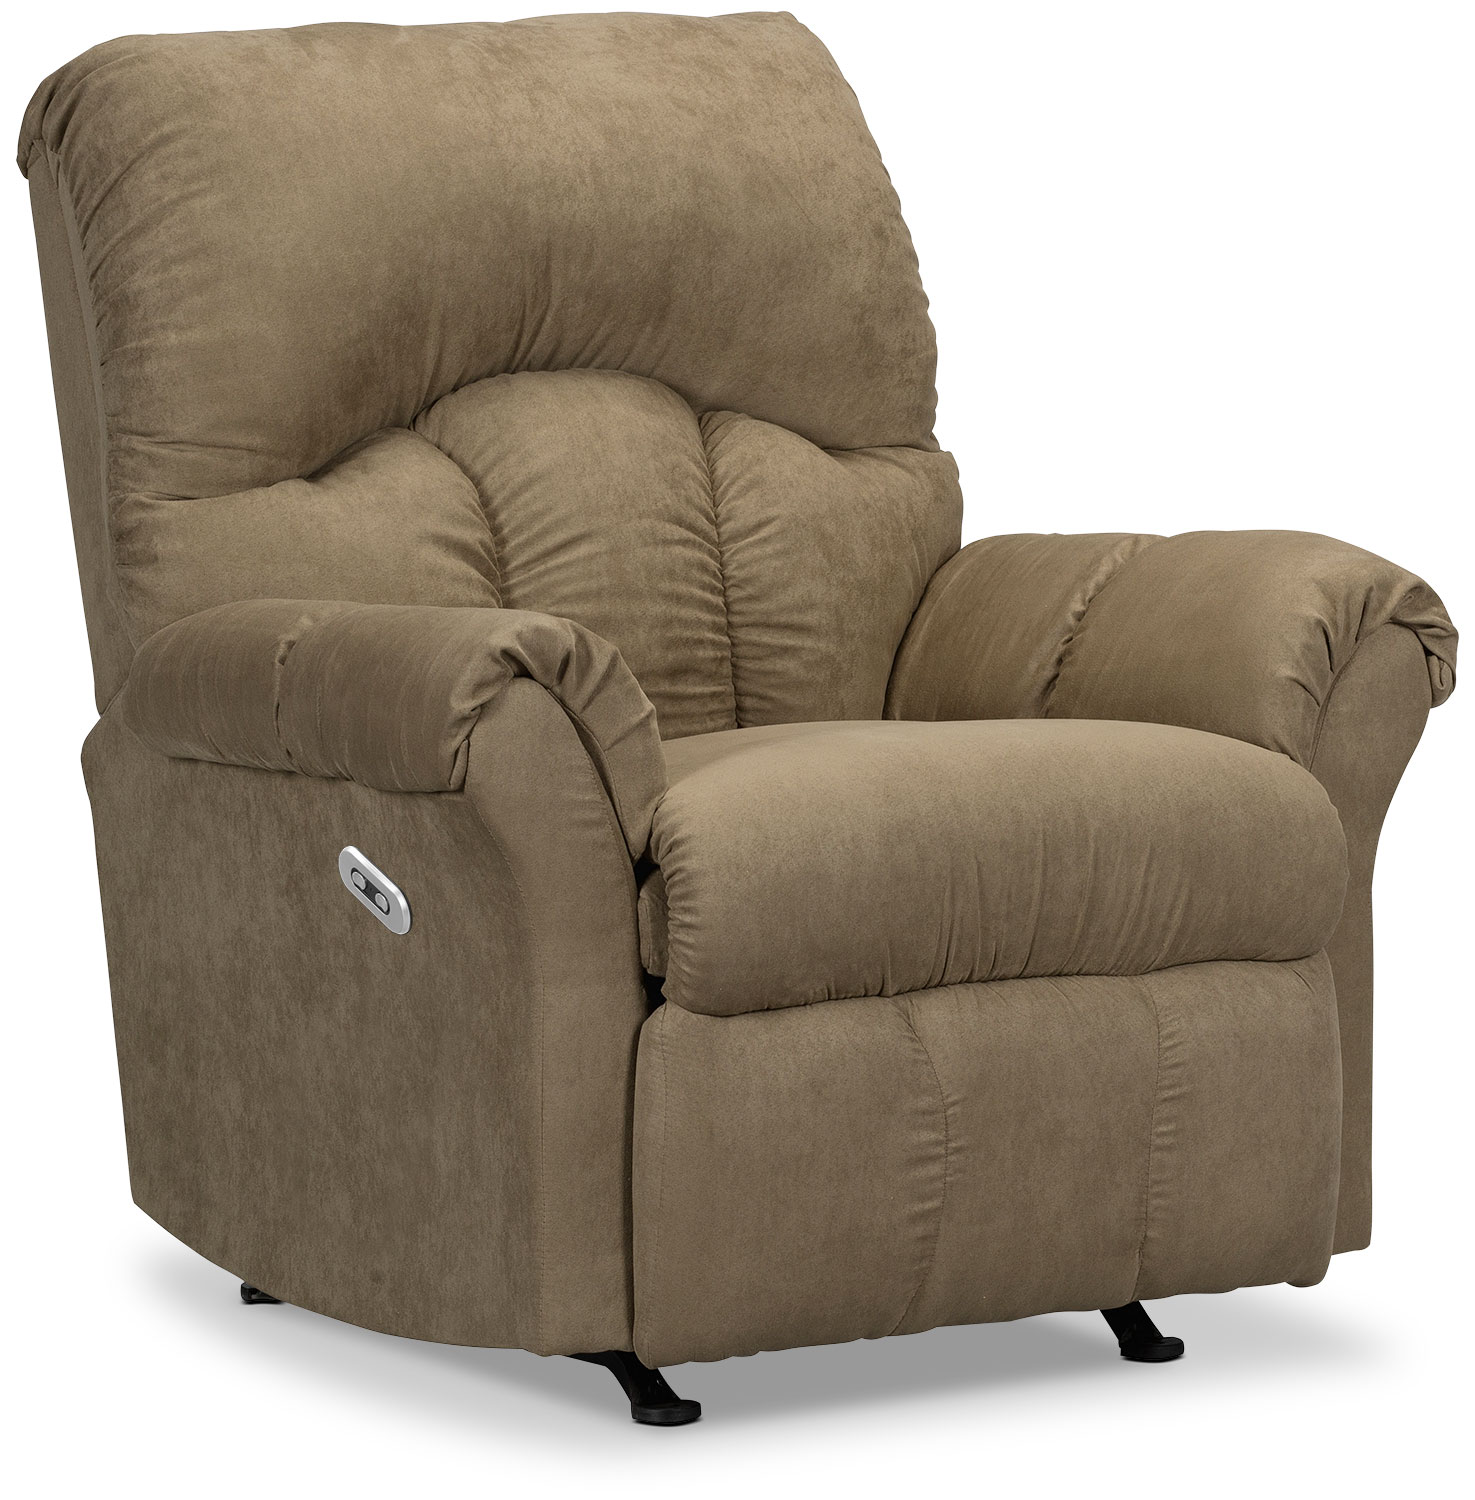 Living Room Furniture - Designed2B Recliner 6734 Microsuede Power Reclining Chair - Mocha